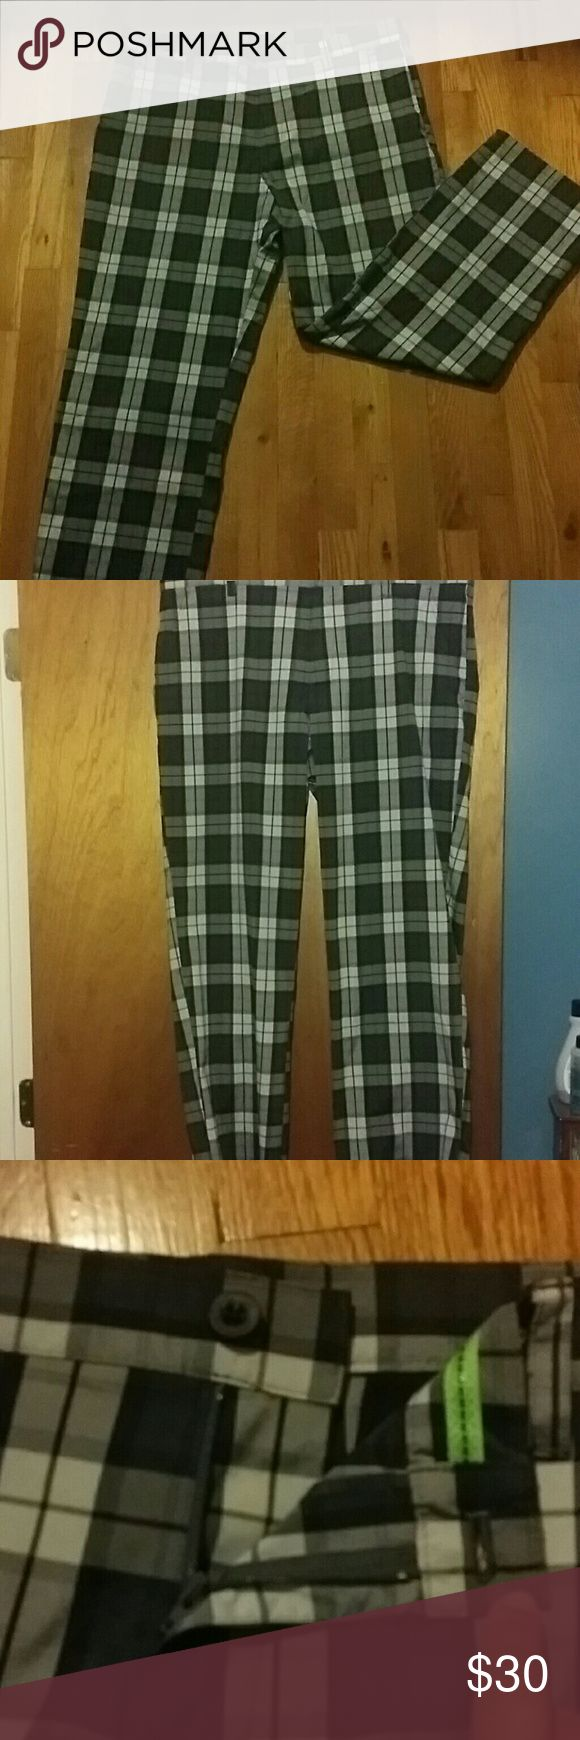 Men's Izod Golf Pants Perfect for your fall golf game!! Only worn a few times, still in excellent condition! No stains or rips. 38 waist, 30 length. Front zipper and button waist. Side pockets as well as two pockets in the back. 98% polyester, 2% spandex. Make me an offer! ⛳ Izod Pants